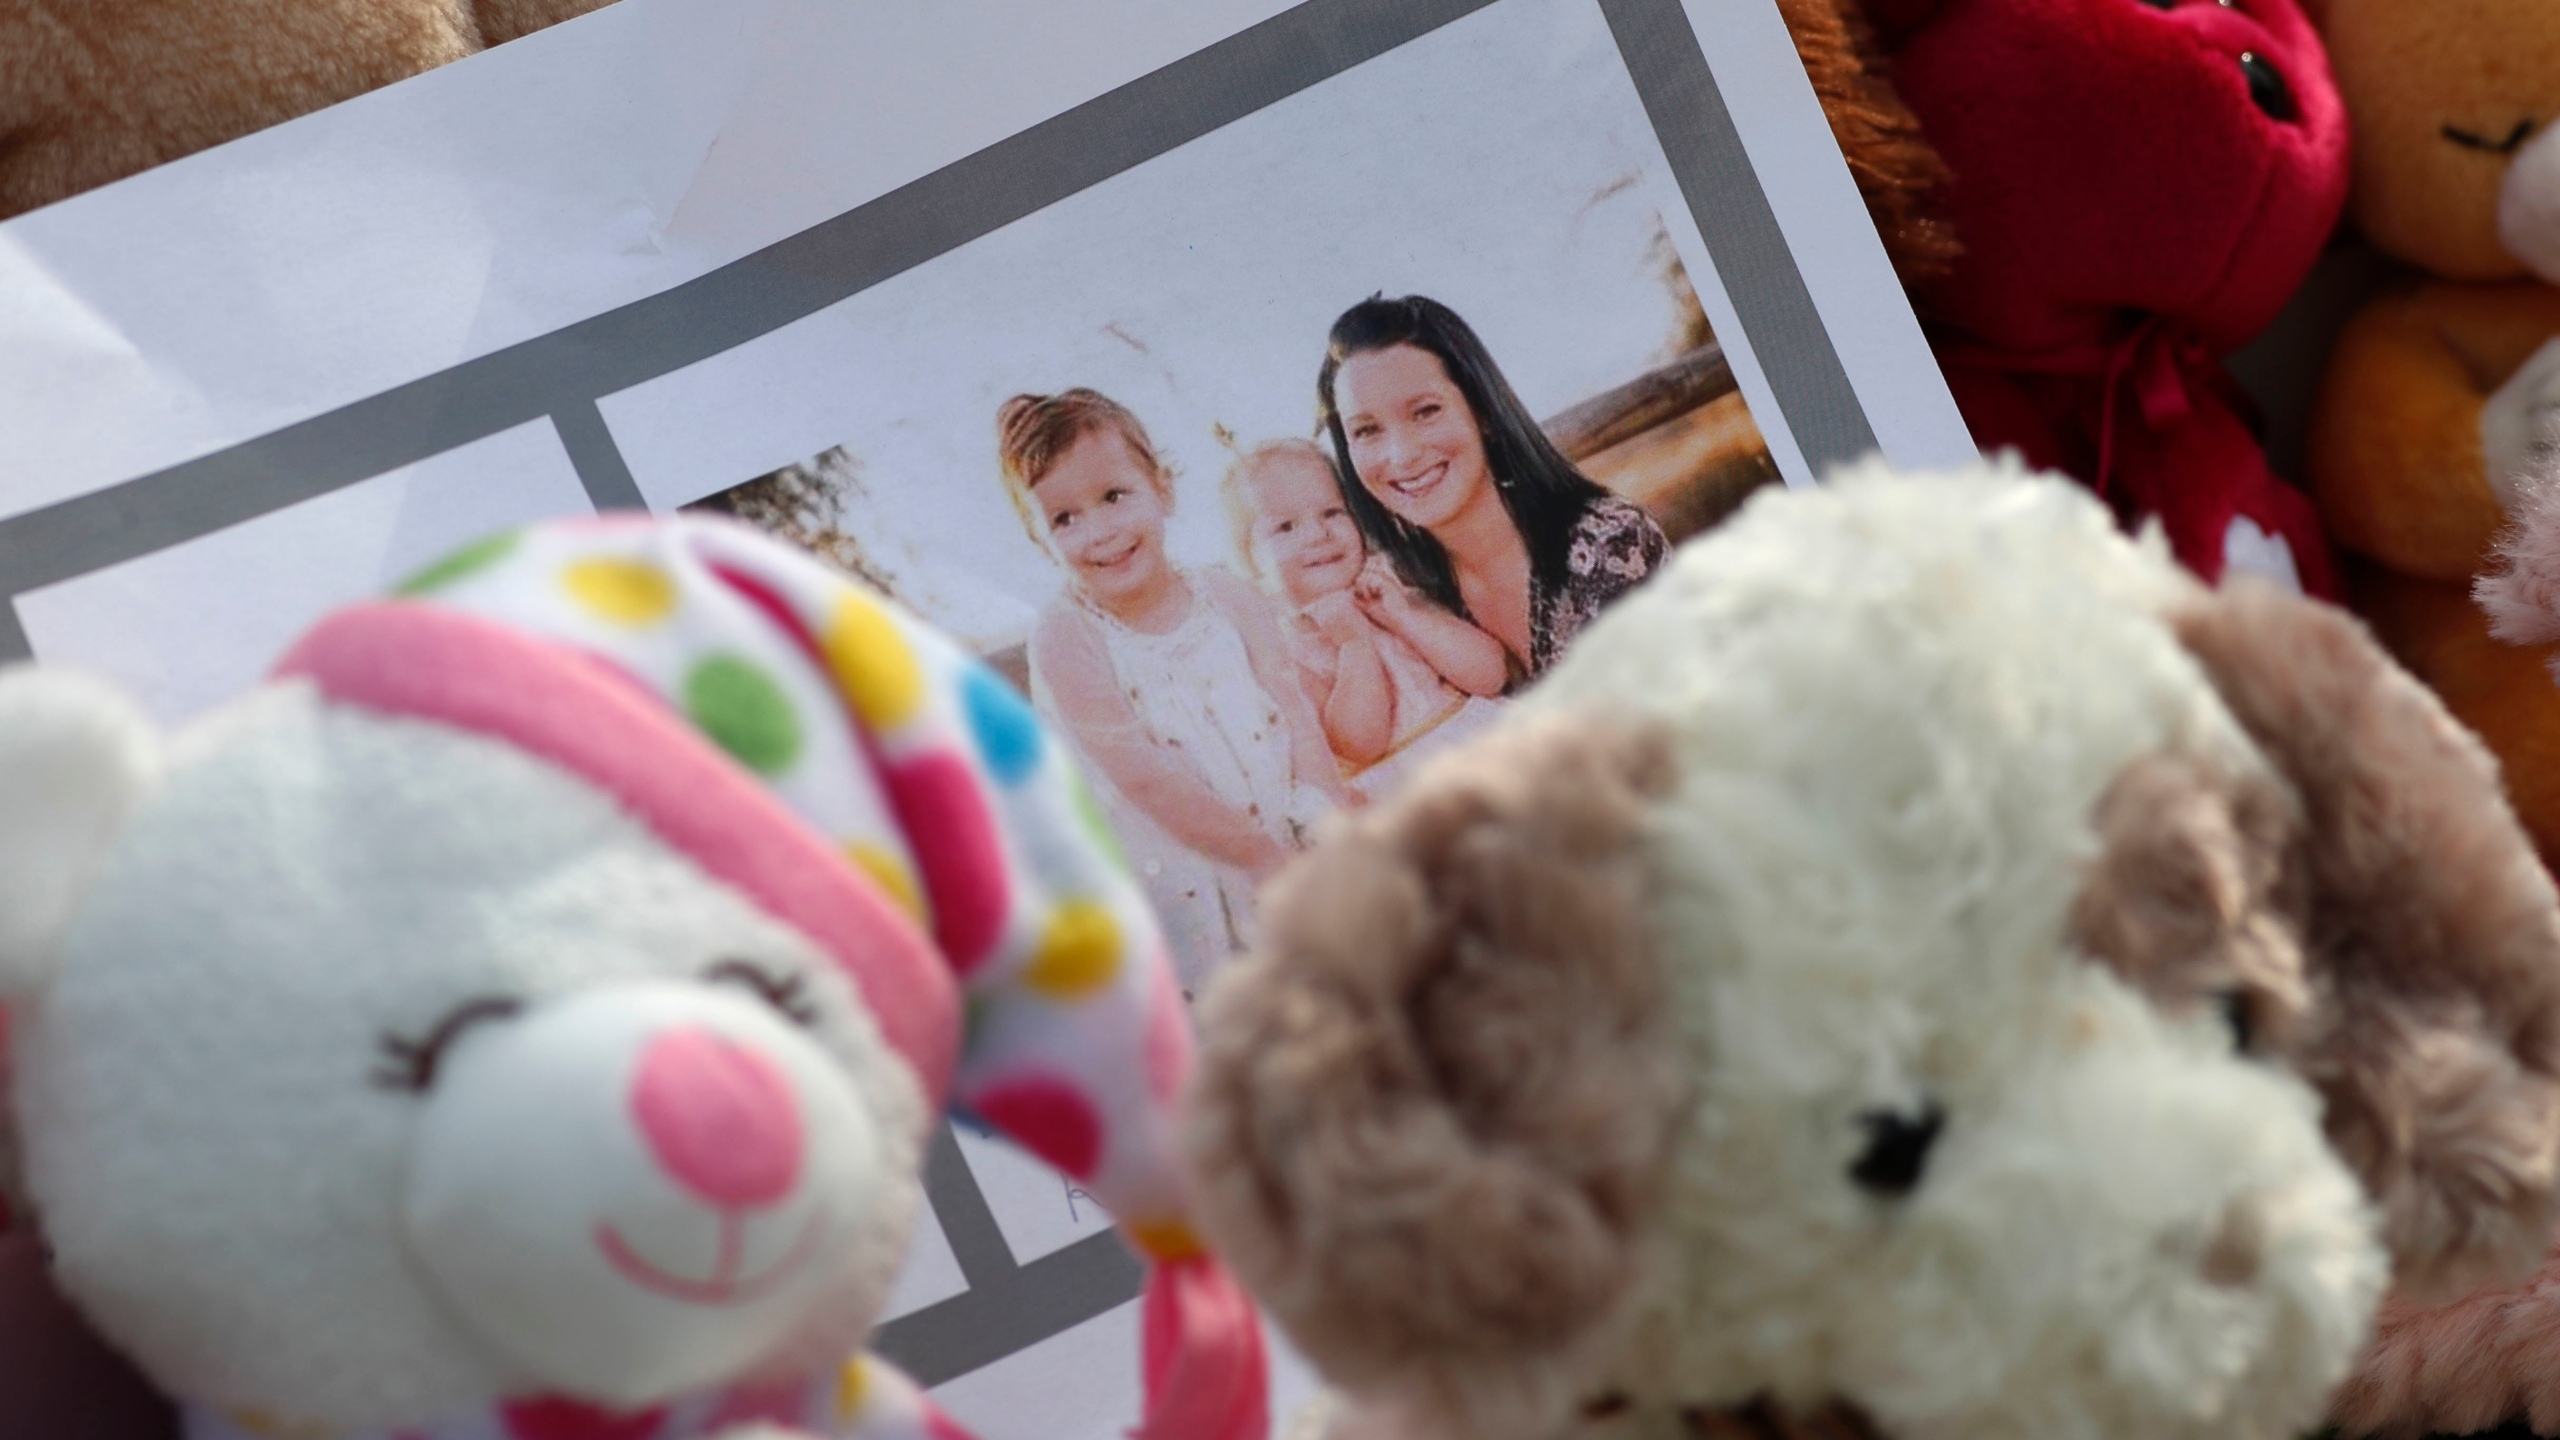 FILE - In this Thursday, Aug. 16, 2018 file photo, a photograph sits amid mementos outside the home where a pregnant woman, Shanann Watts, and her two daughters, Bella and Celeste, lived in Frederick, Colo. (AP Photo/David Zalubowski, File)